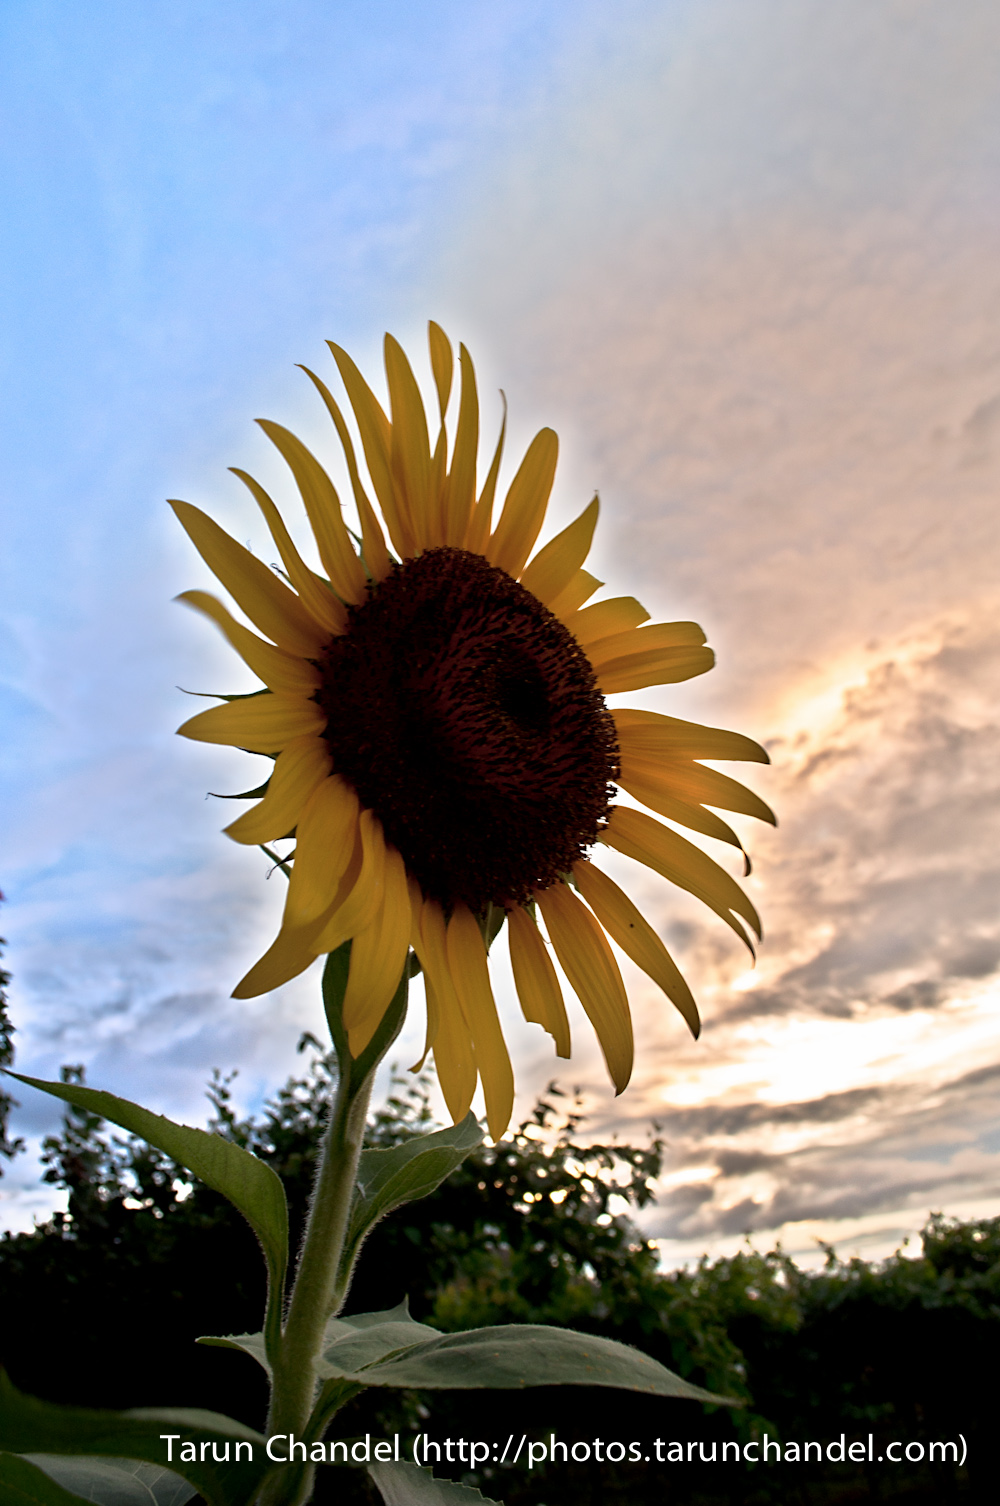 Sunflower Evening, Tarun Chandel Photoblog